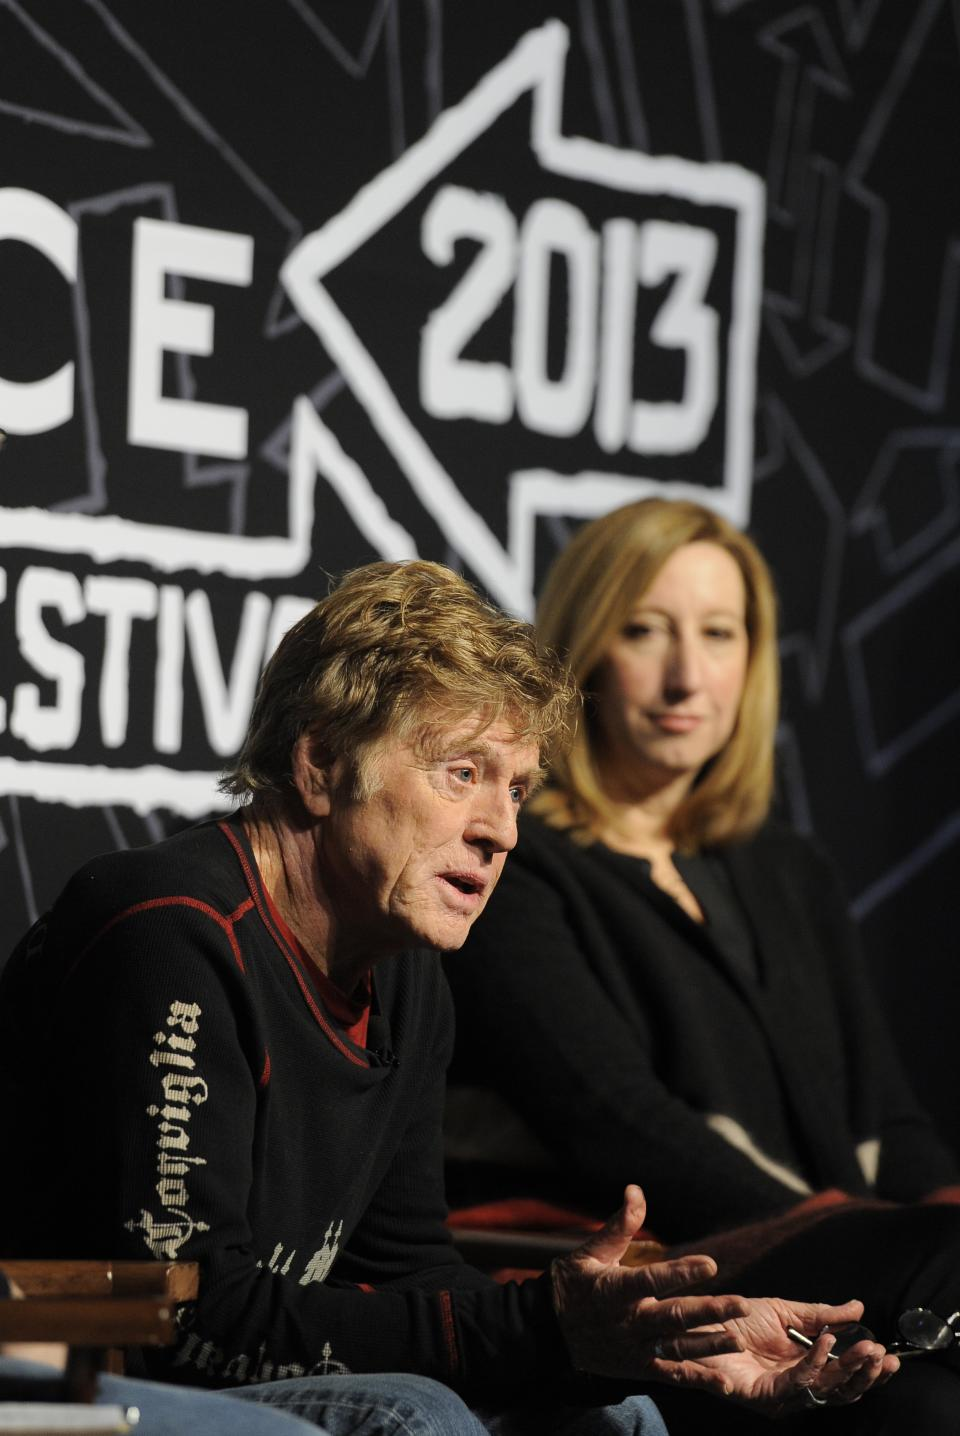 Robert Redford, left, founder and president of the Sundance Institute, speaks as Keri Putnam, executive director of the Sundance Institute, looks on during the opening news conference of the 2013 Sundance Film Festival, Thursday, Jan. 17, 2013, in Park City, Utah. (Photo by Chris Pizzello/Invision/AP)